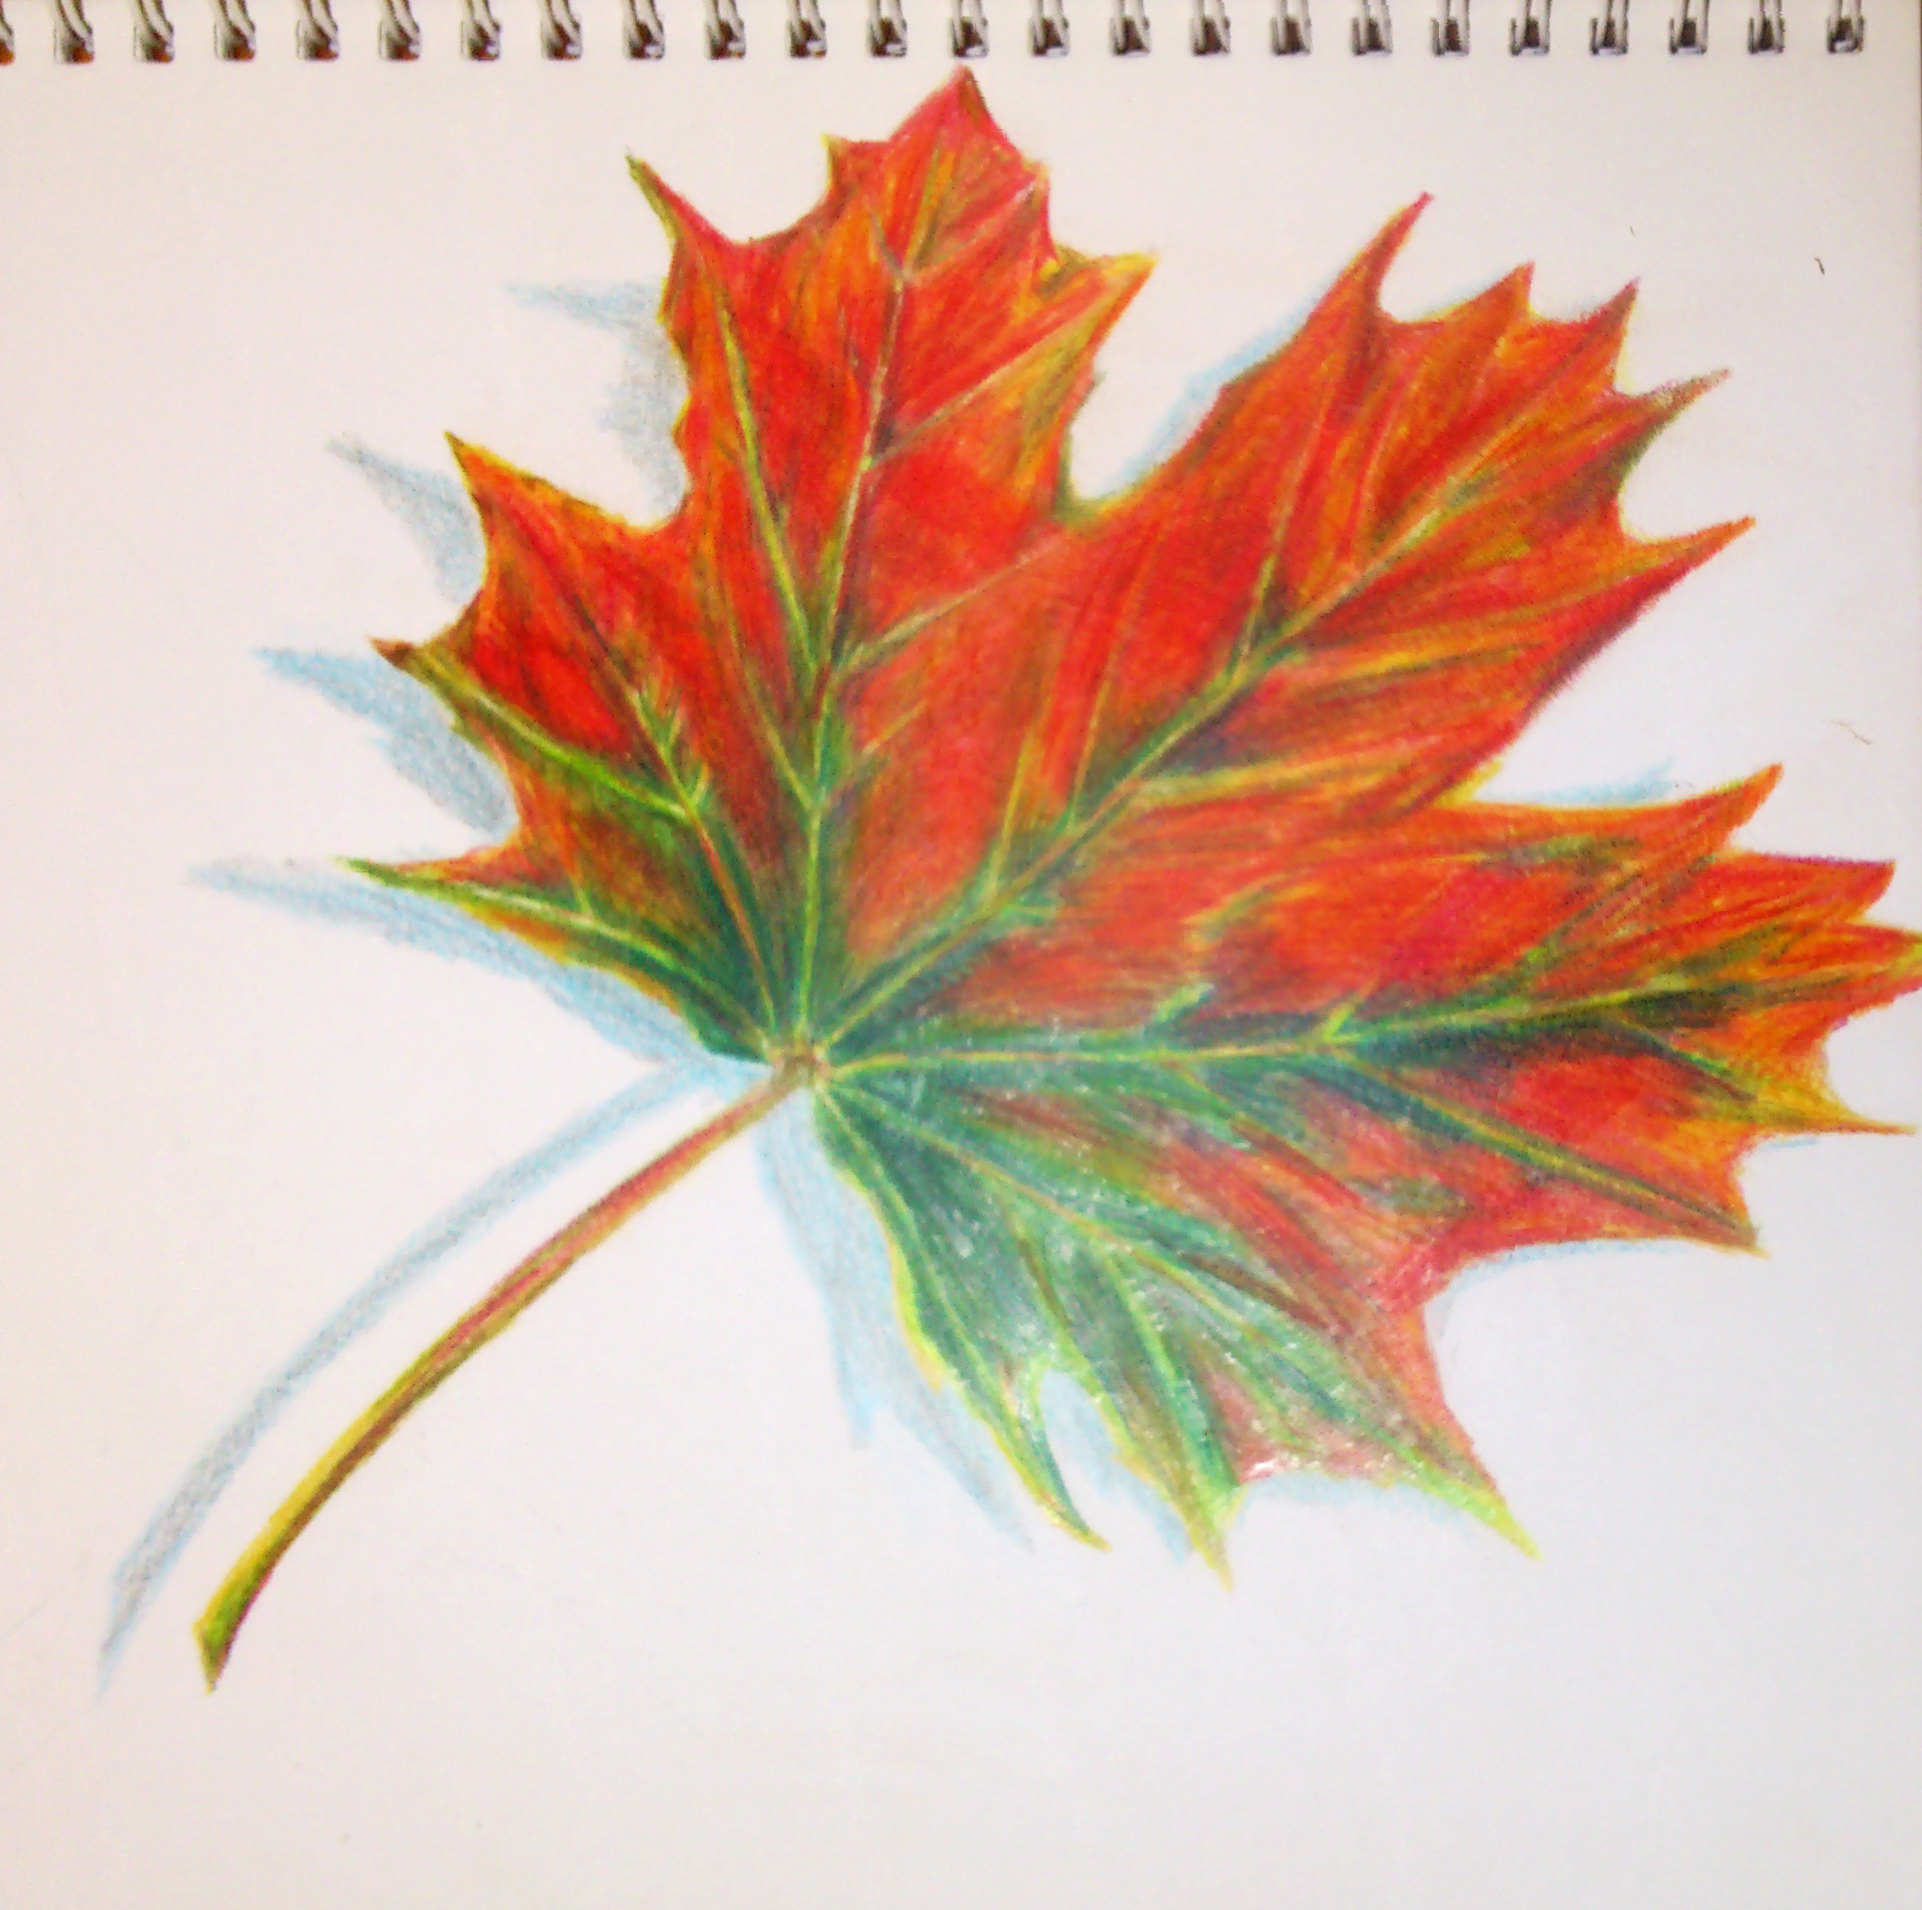 Autumn Leaf Colored Pencils By Kamilam94 On Deviantart